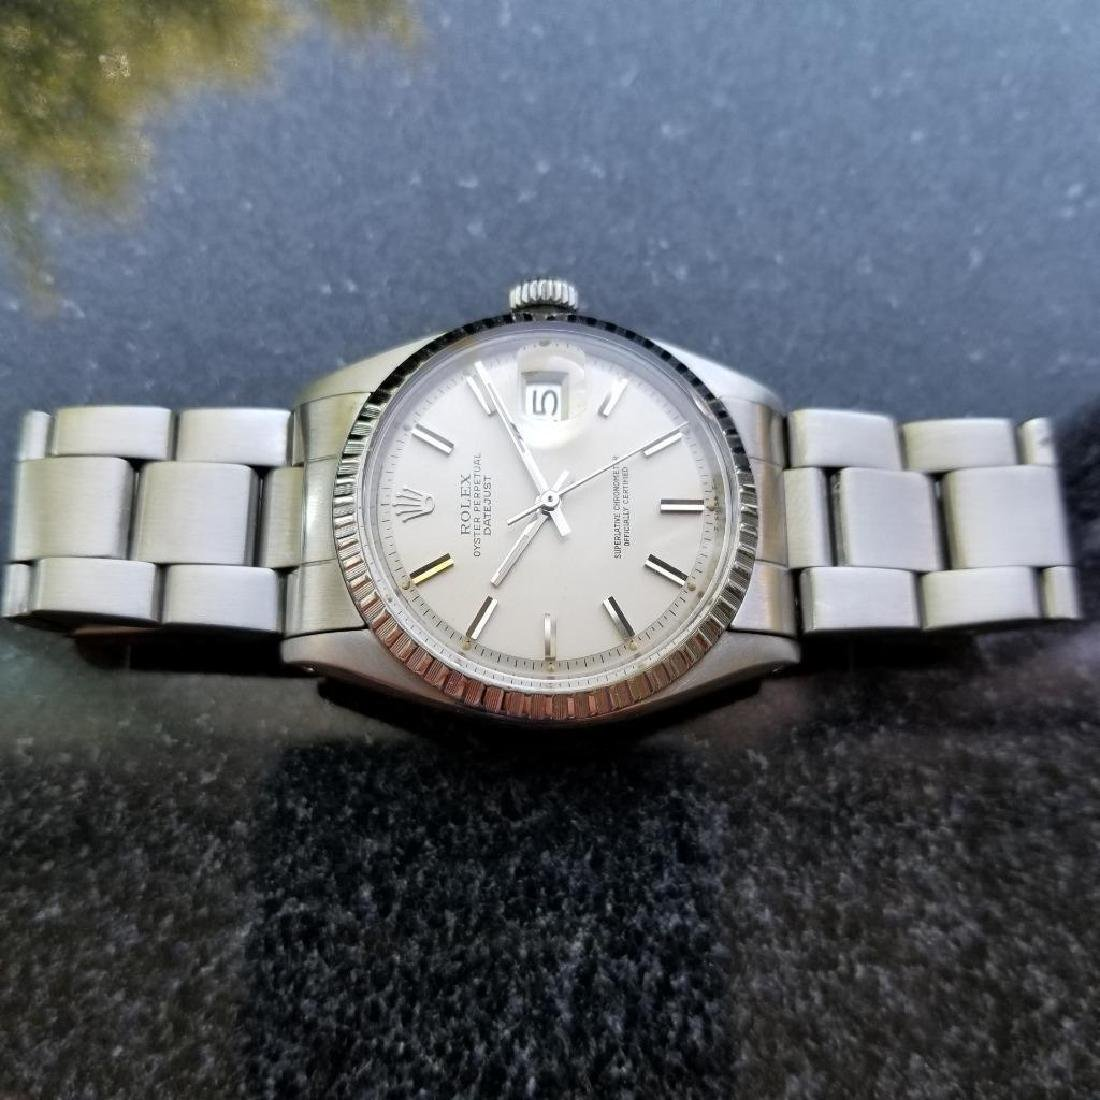 Rolex Oyster Perpetual 1603 Datejust Vintage 1977 Auto - 3